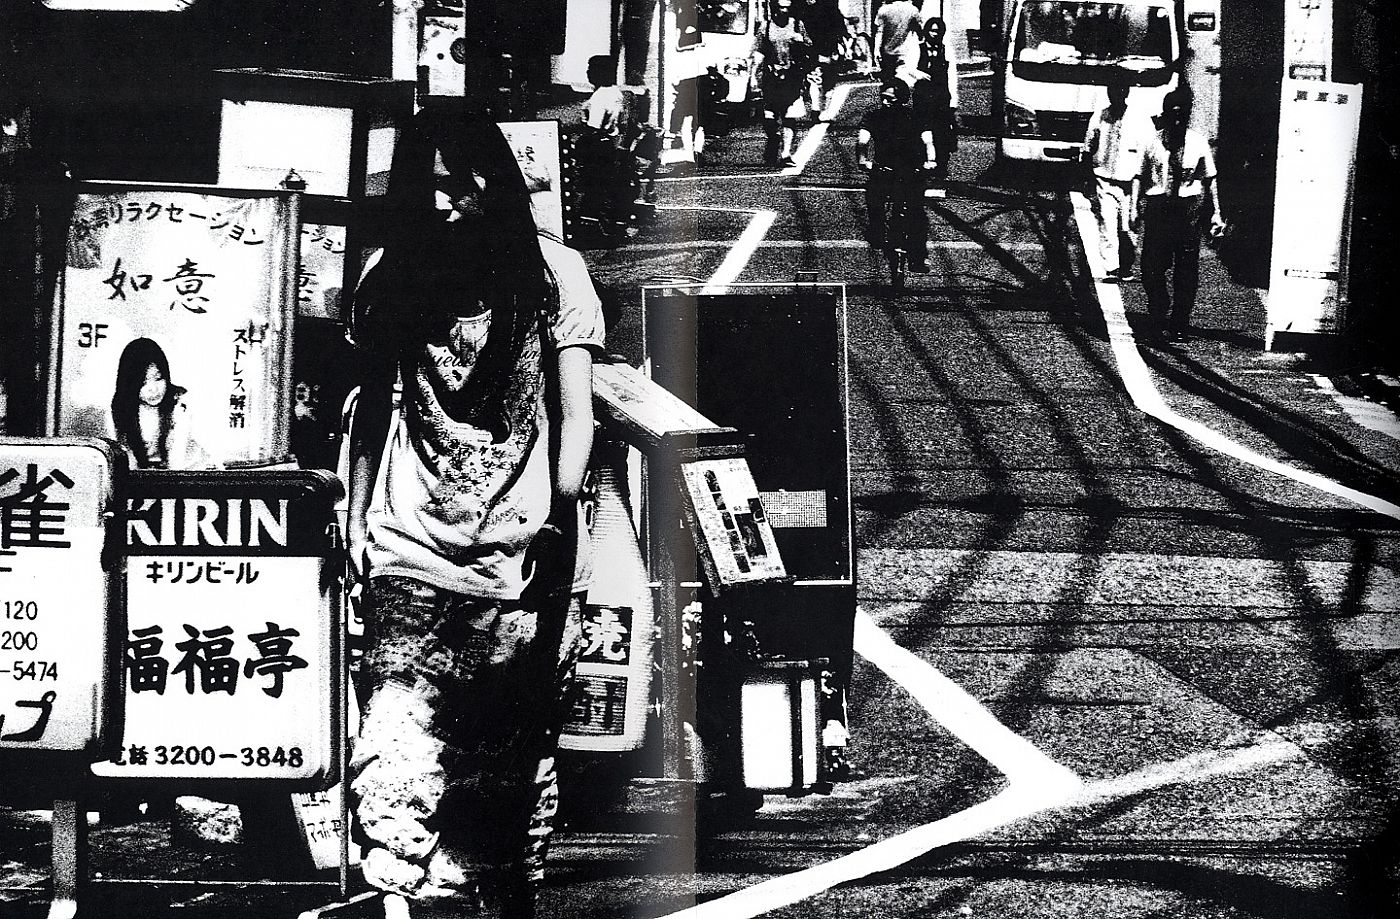 Daido Moriyama: Printing Show - TKY, Limited Edition (with Screenprinted Cover) [SIGNED]